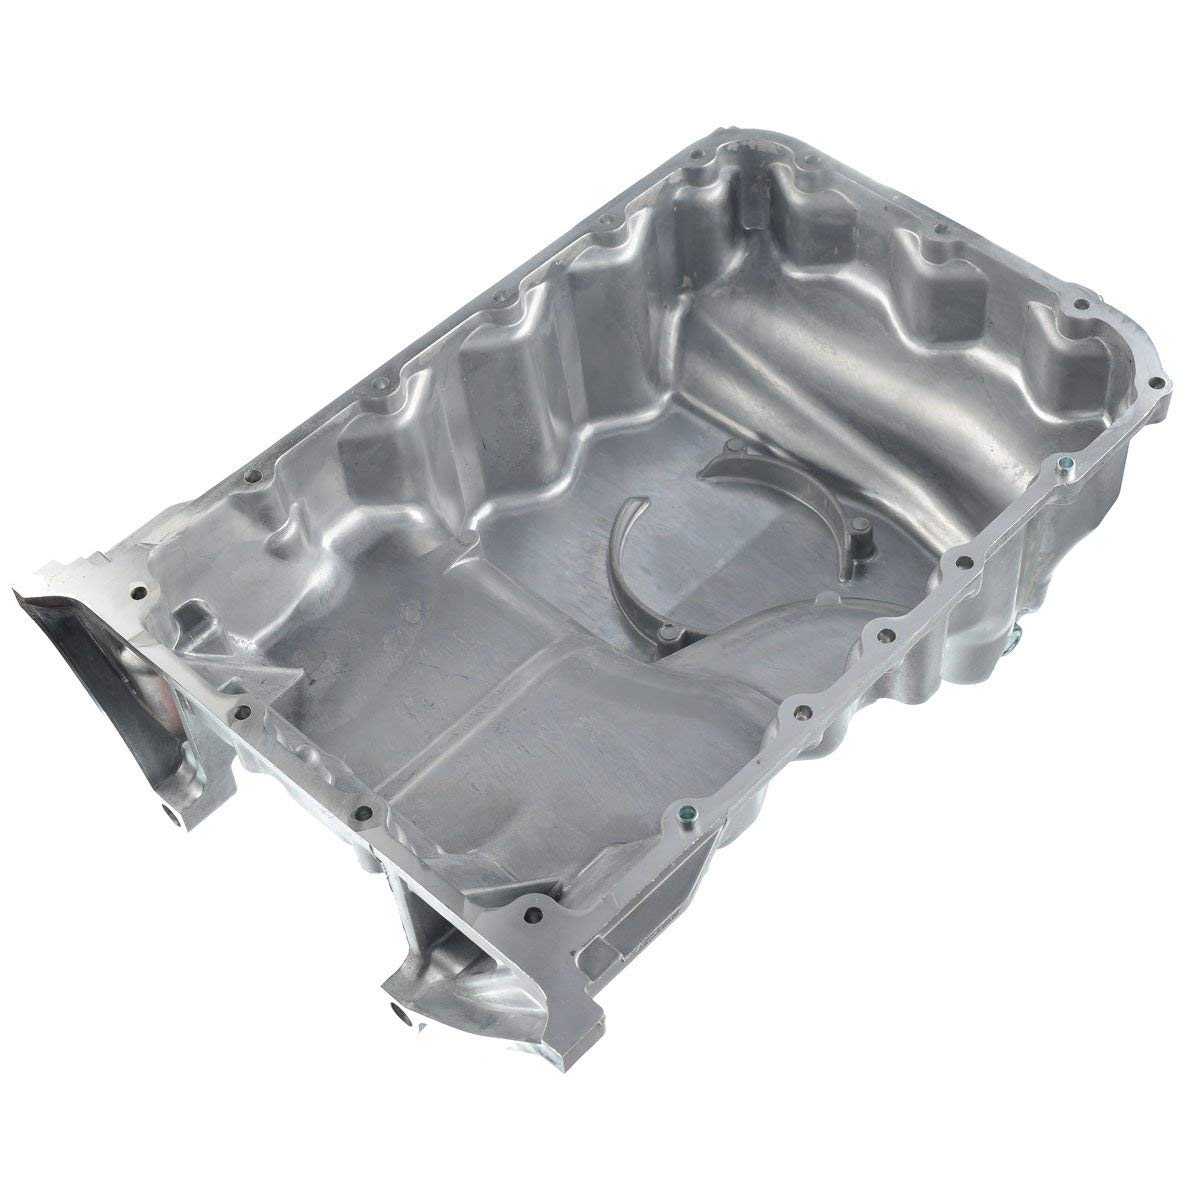 A-Premium Engine Oil pan for Honda Accord 2003-2007 V6 3.0L Odyssey Acura TL 11200-RDA-A00